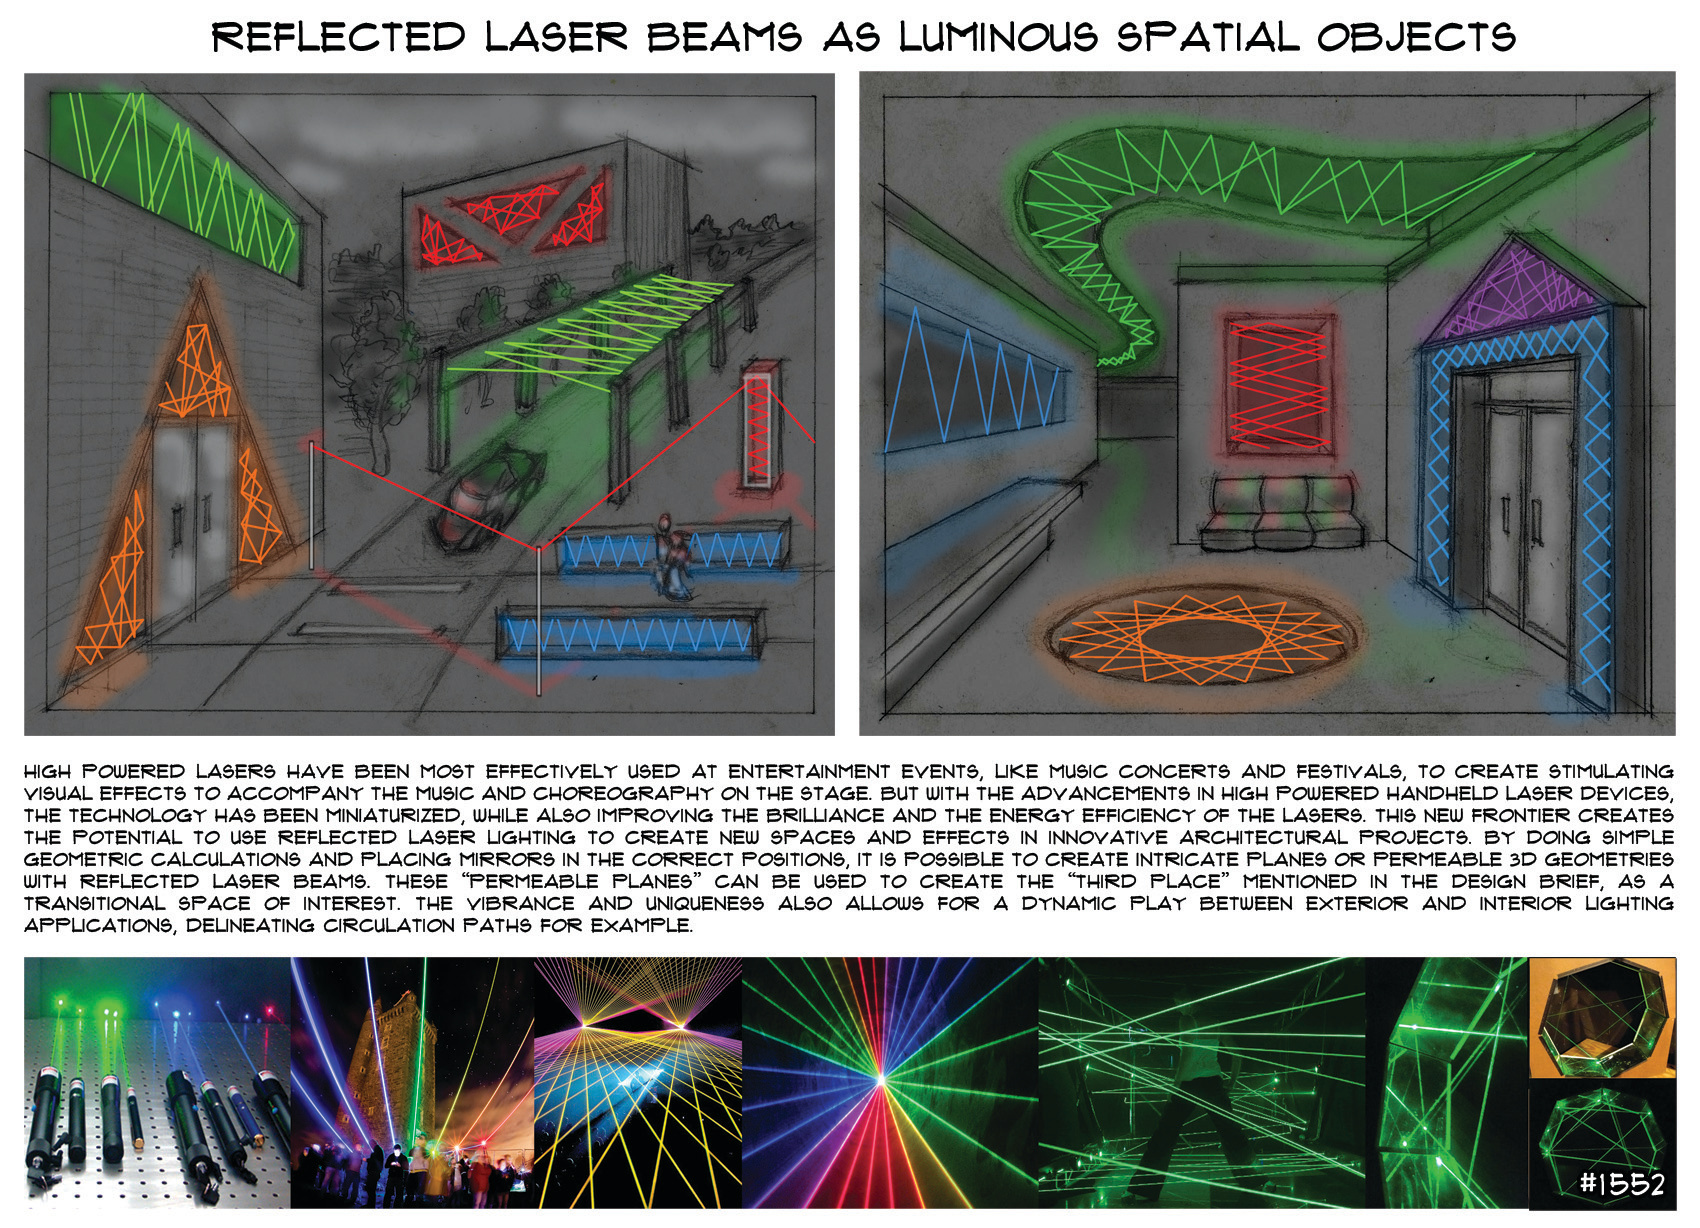 LIGHTING CONCEPT_REFLECTED LASERS